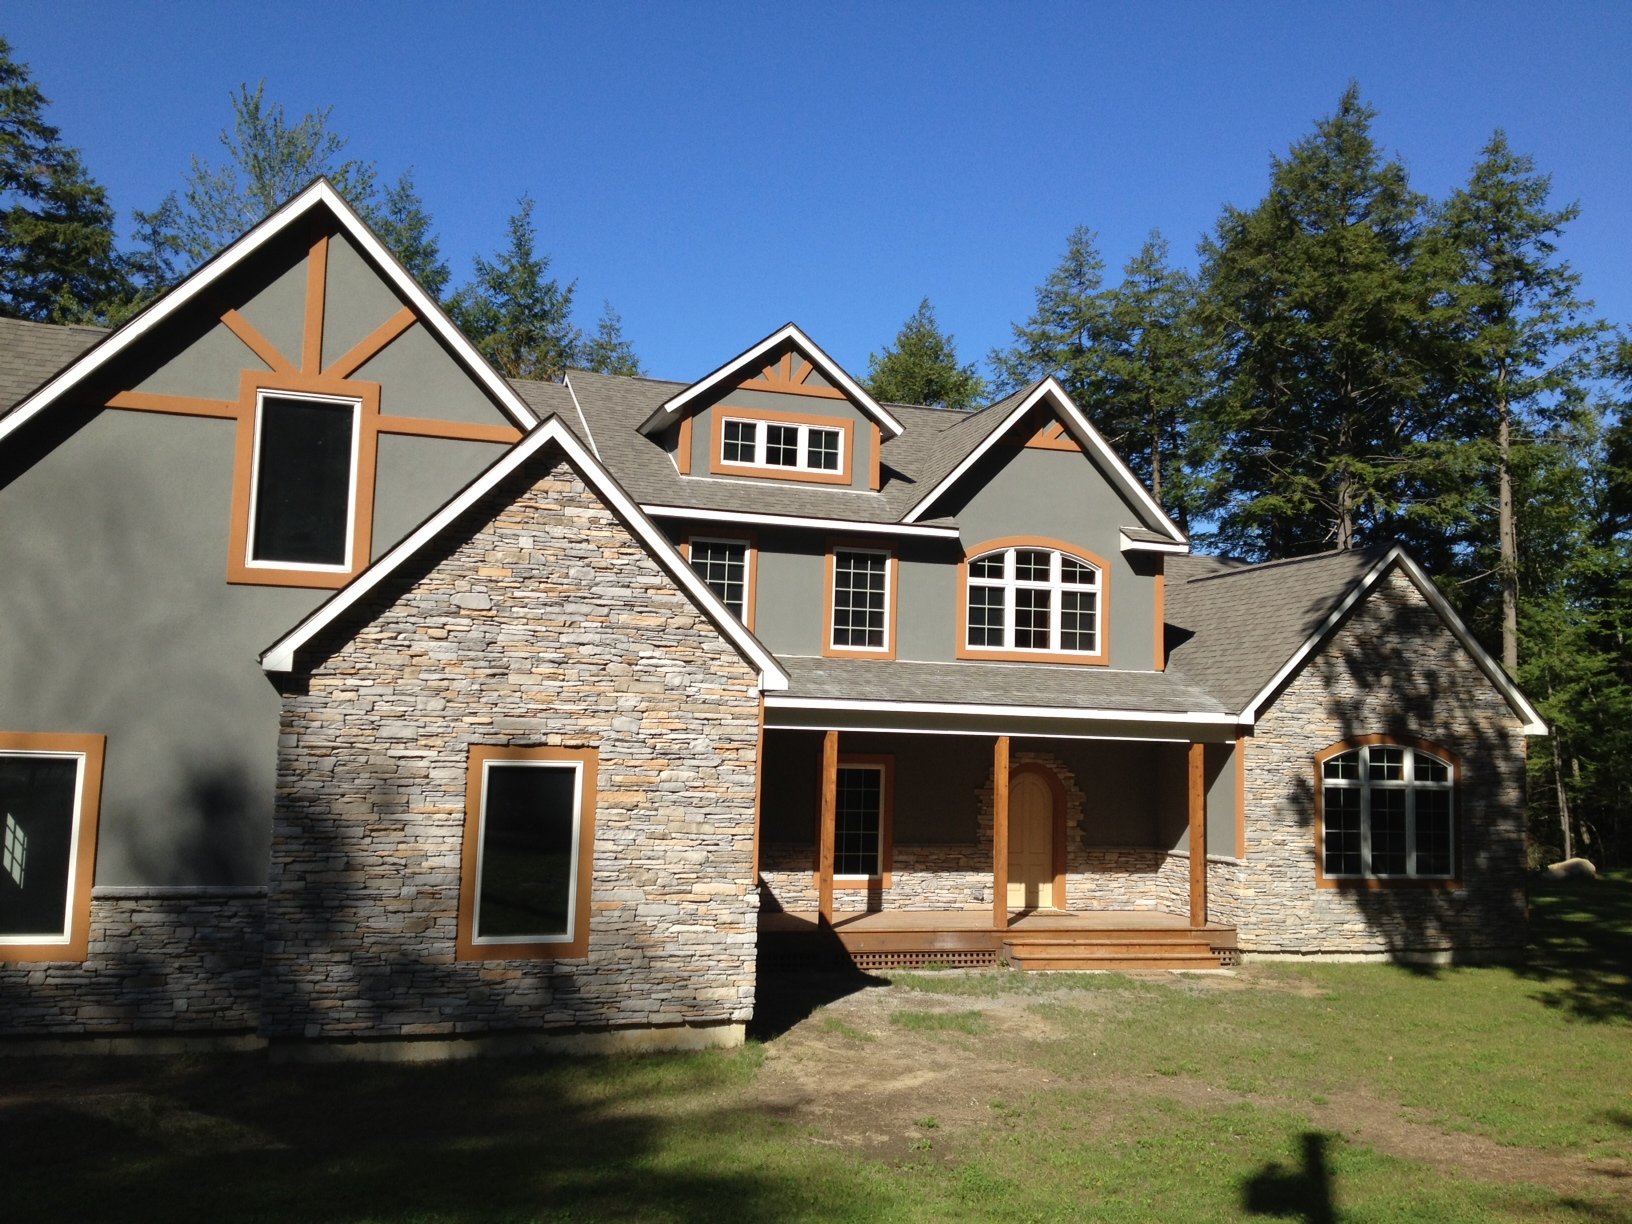 Custom Modular Homes | Saratoga Construction LLC